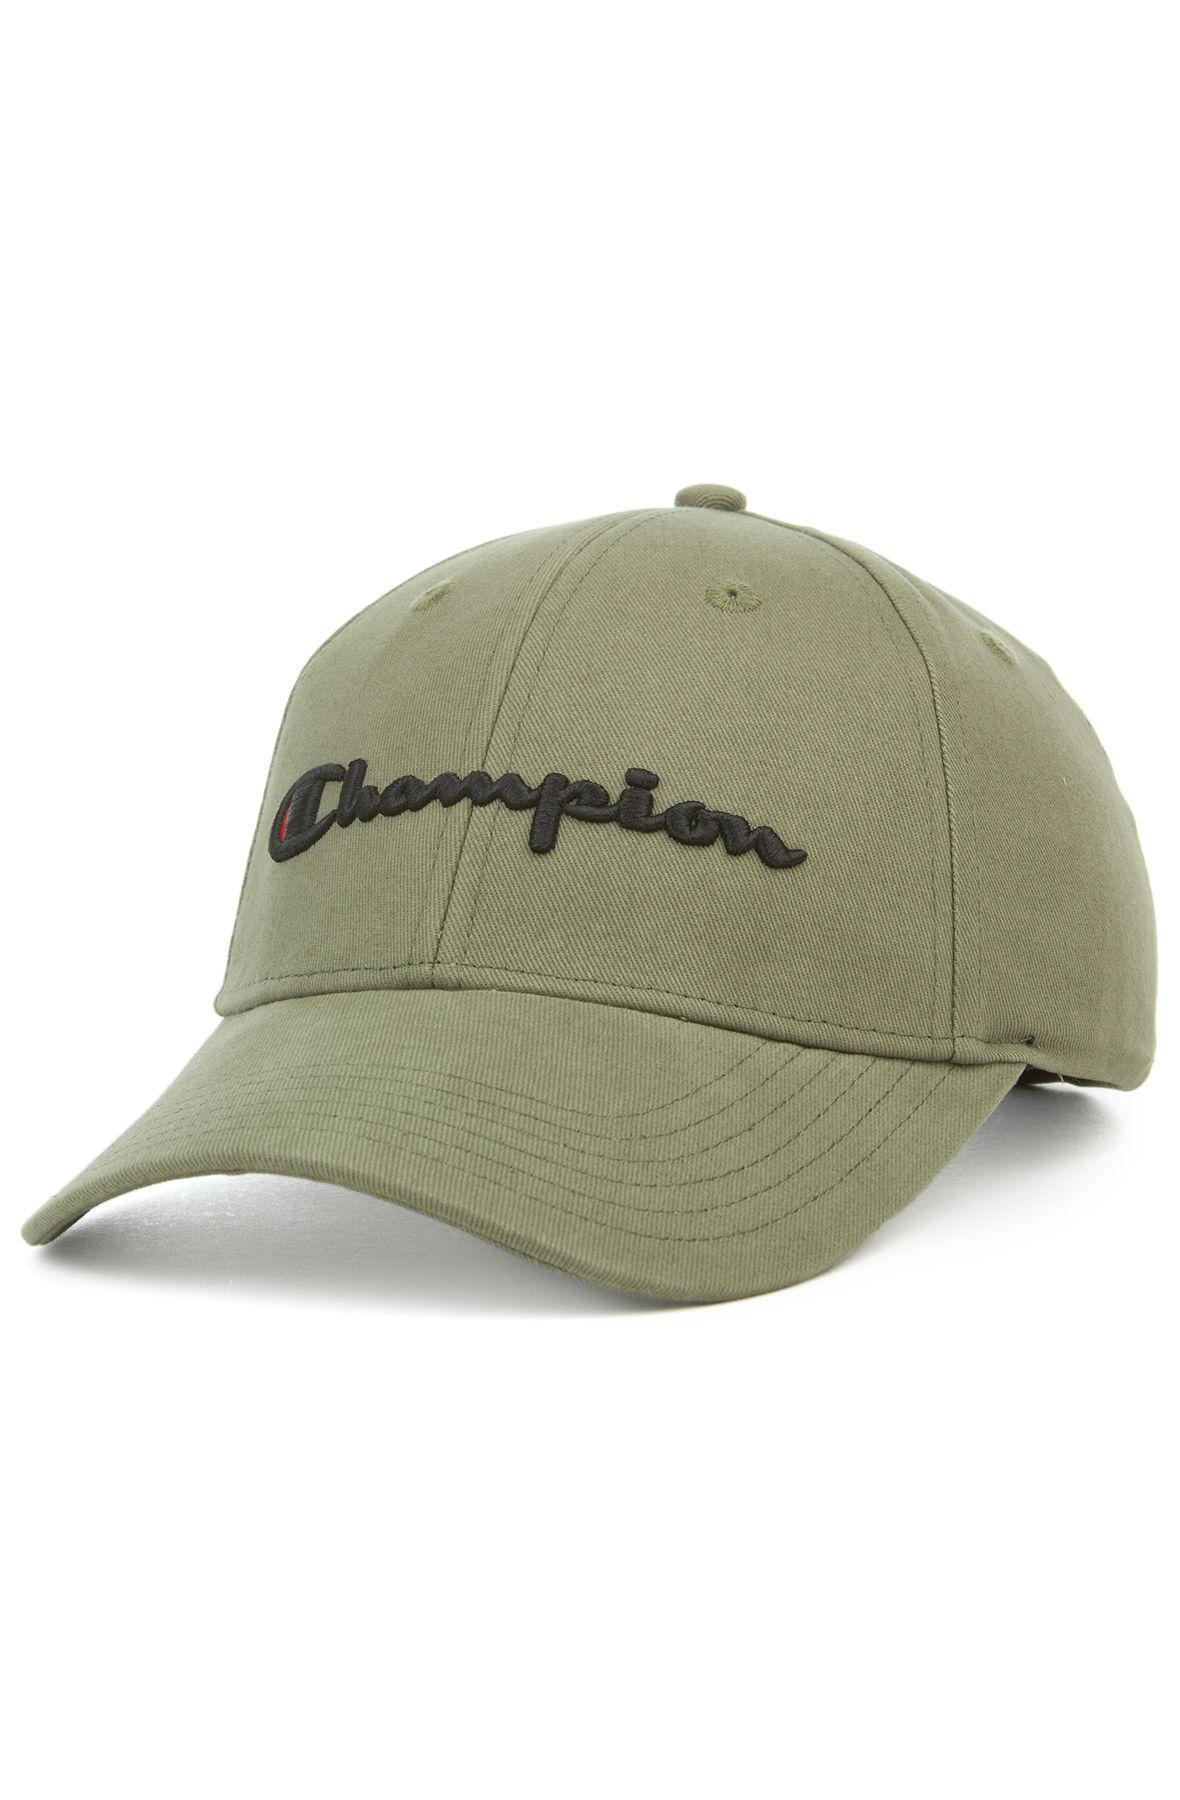 650d6a56304 Lyst - Champion The Logo Twill Dad Hat In Cargo Olive in Green for Men